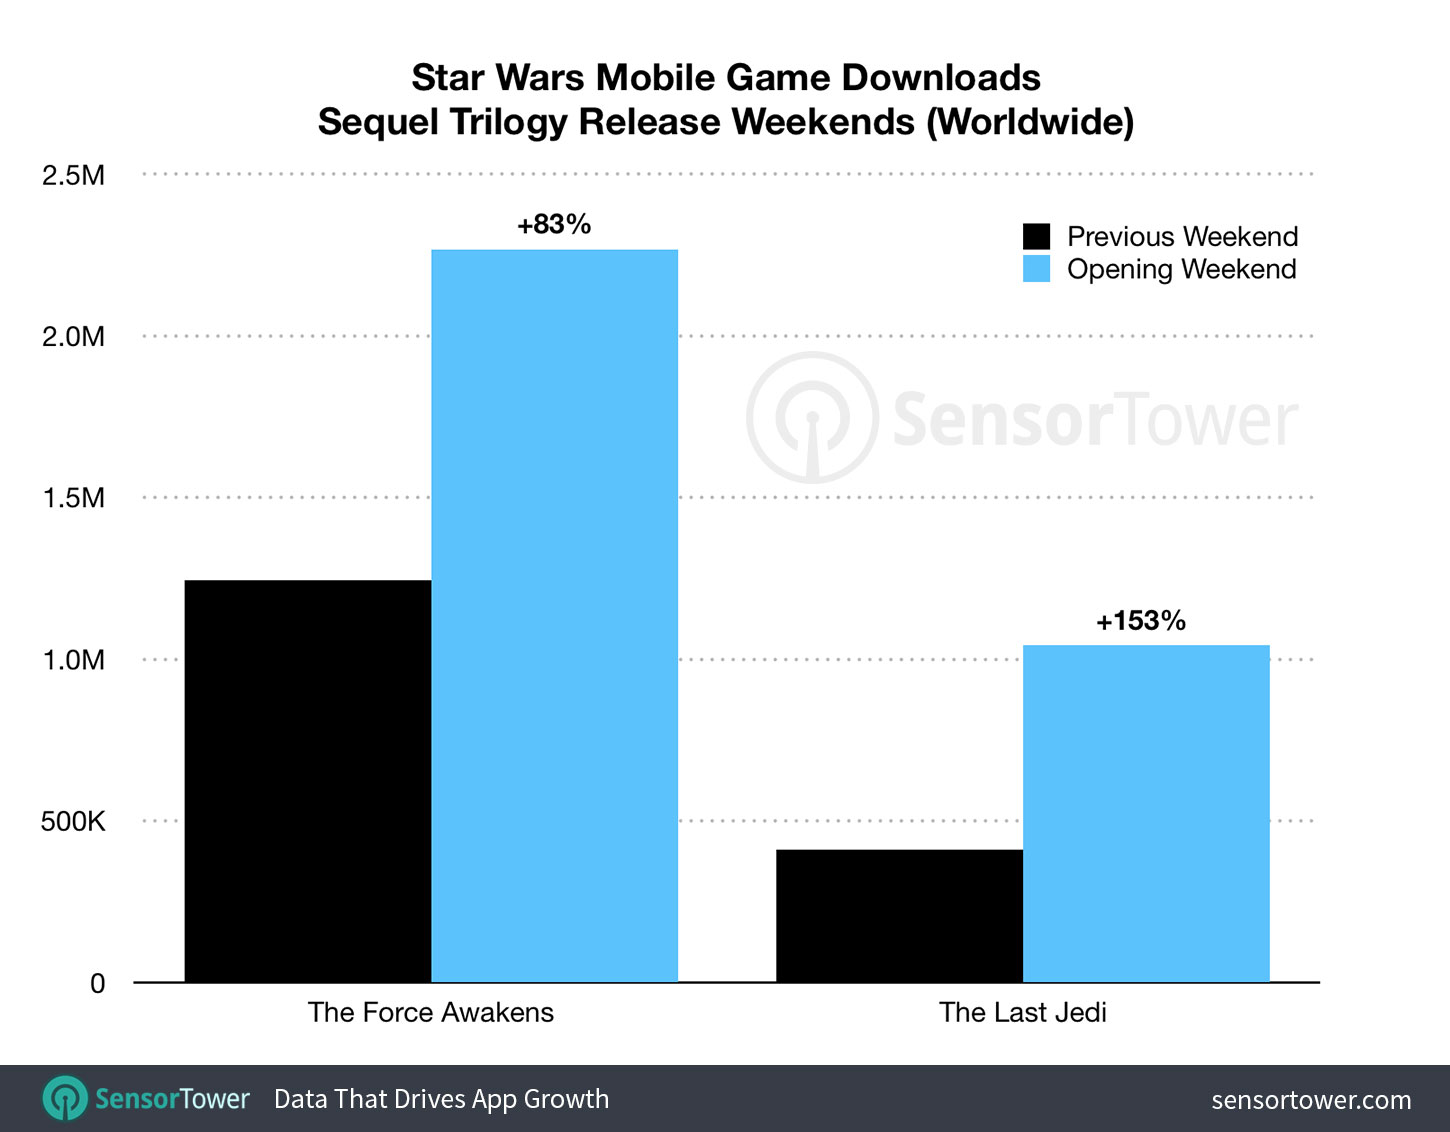 Chart comparing Star Wars mobile game installs for the release weekend on The Last Jedi vs. The Force Awakens 'the last jedi' premiere more than doubled star wars mobile game downloads - the last jedi force awakens downloads - 'The Last Jedi' Premiere More Than Doubled Star Wars Mobile Game Downloads